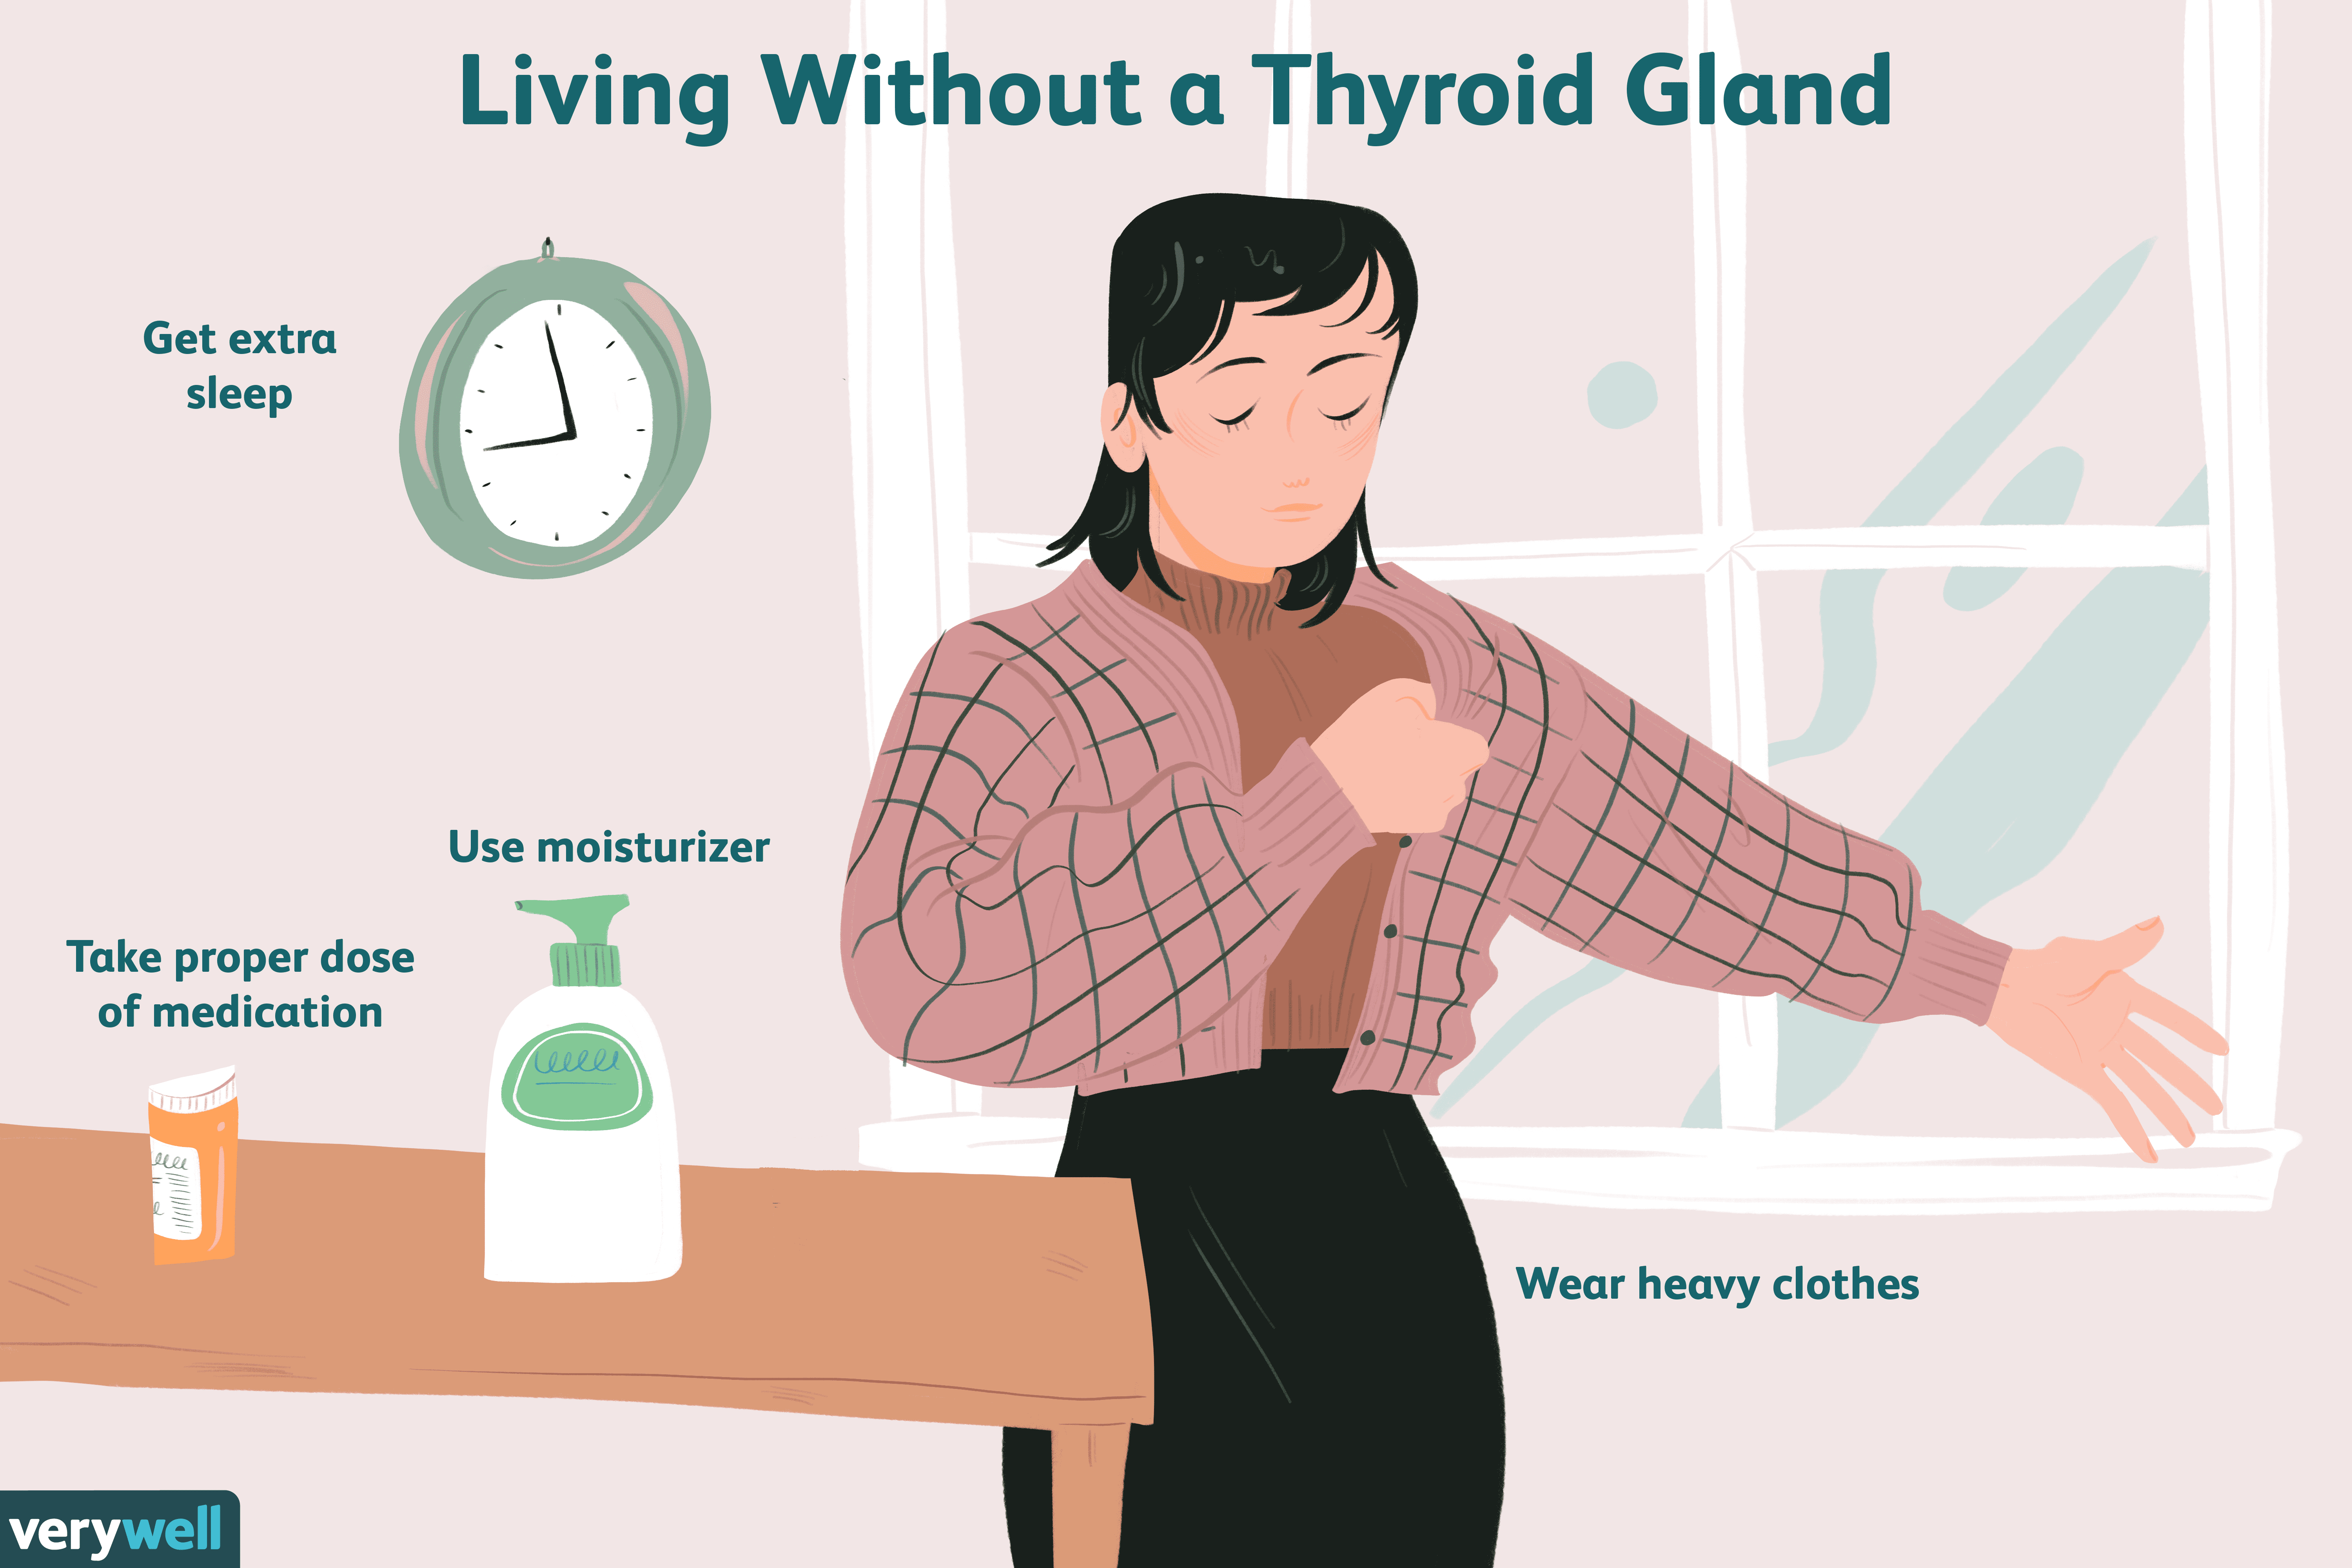 Living Without a Thyroid Gland